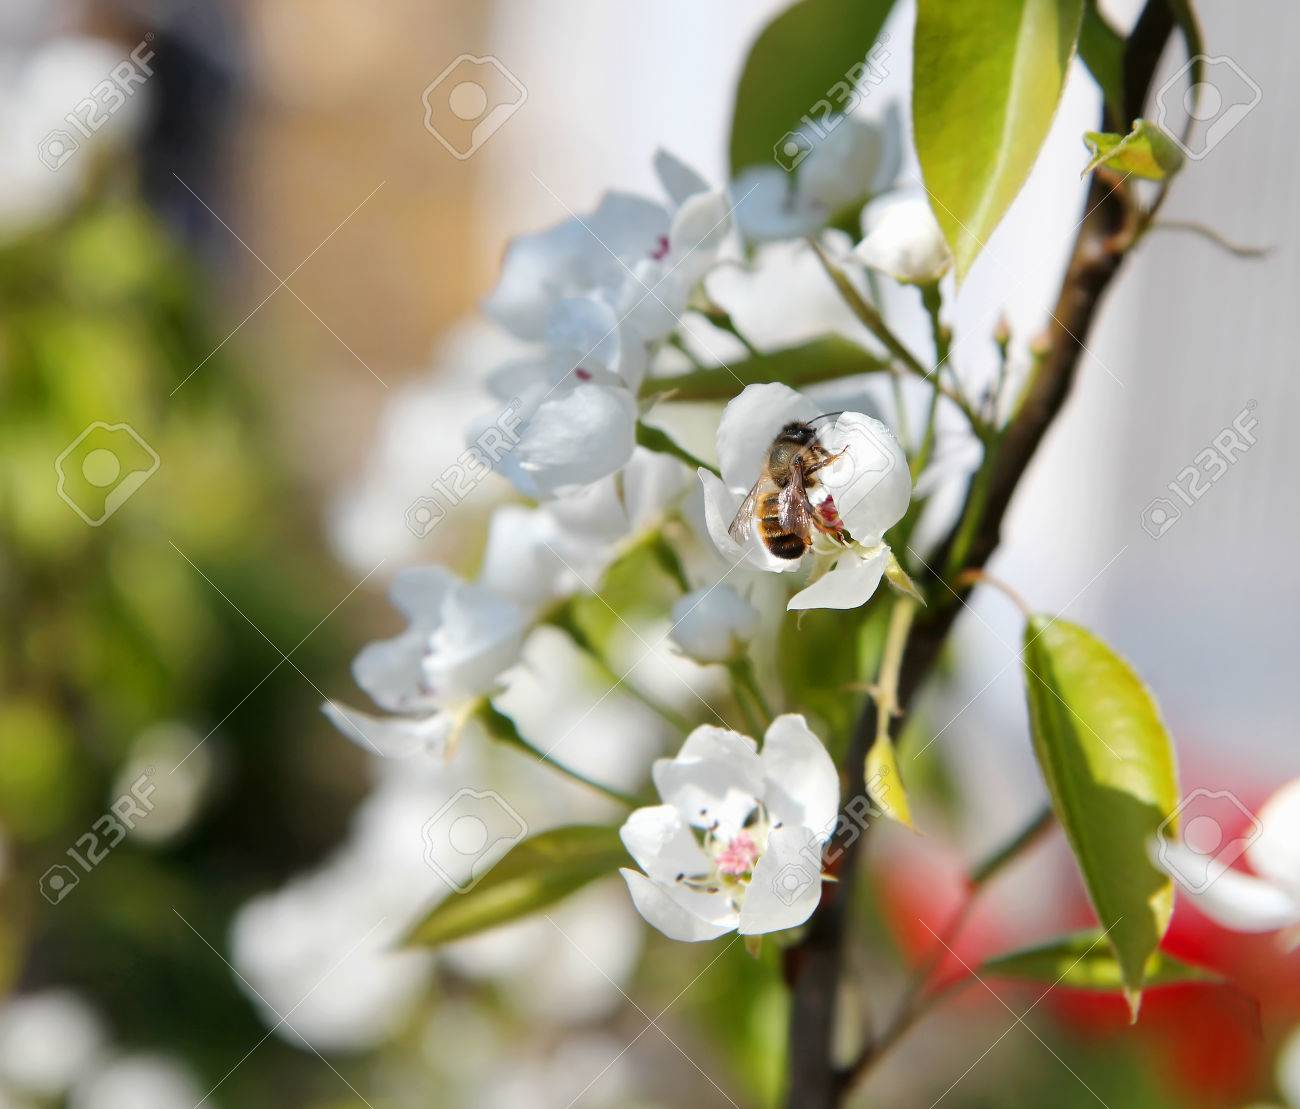 Bee Pollinating Flowering Branches Of A Tree With White Flowers